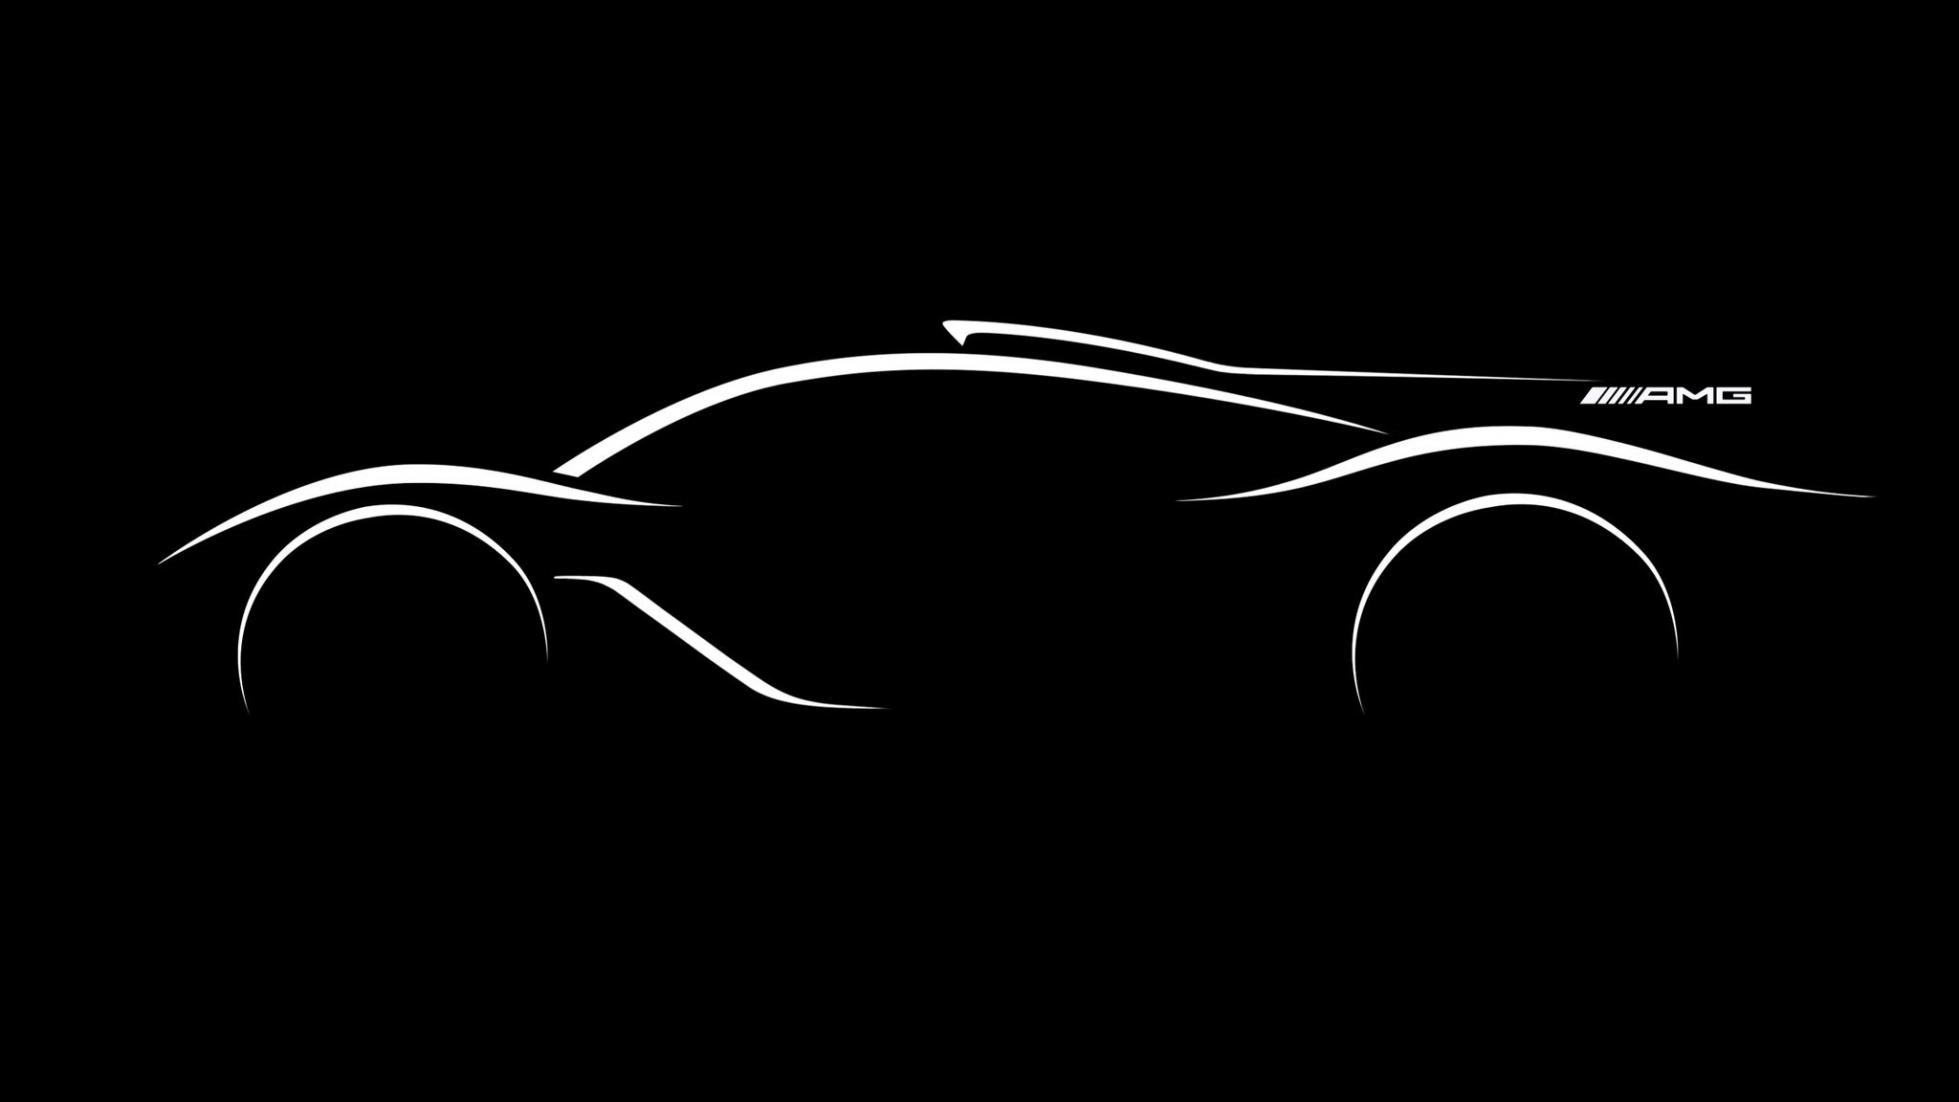 Exclusive More Amg Hypercar Details Revealed By Amg Ceo Tobias